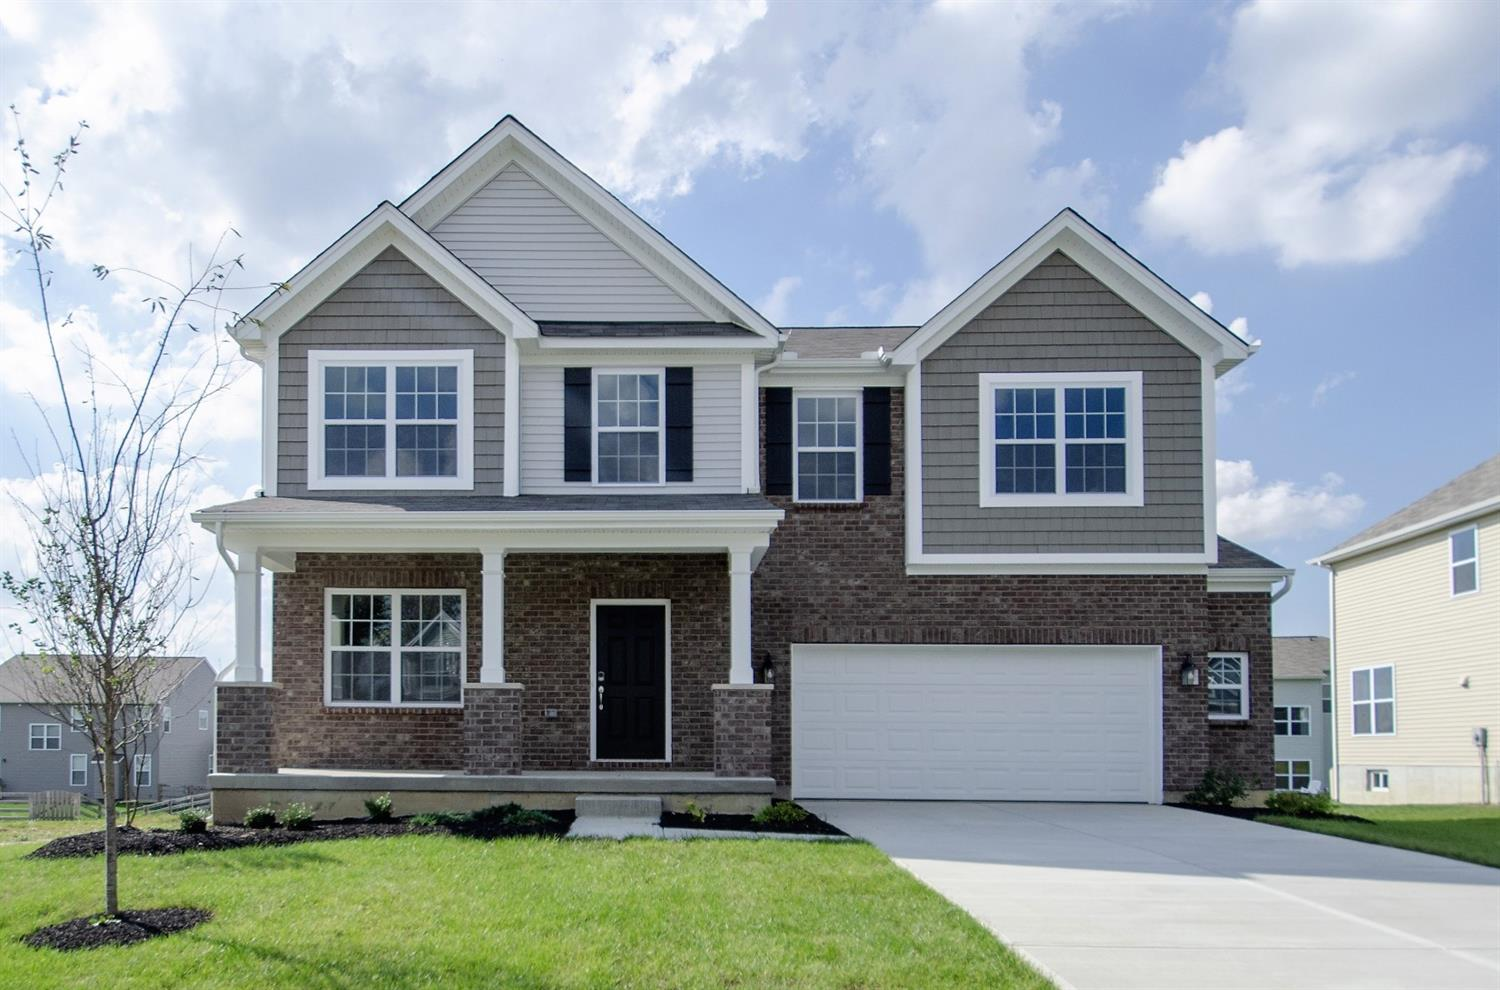 Property for sale at 4118 Bluestem Drive Unit: 323, Turtle Creek Twp,  OH 45036